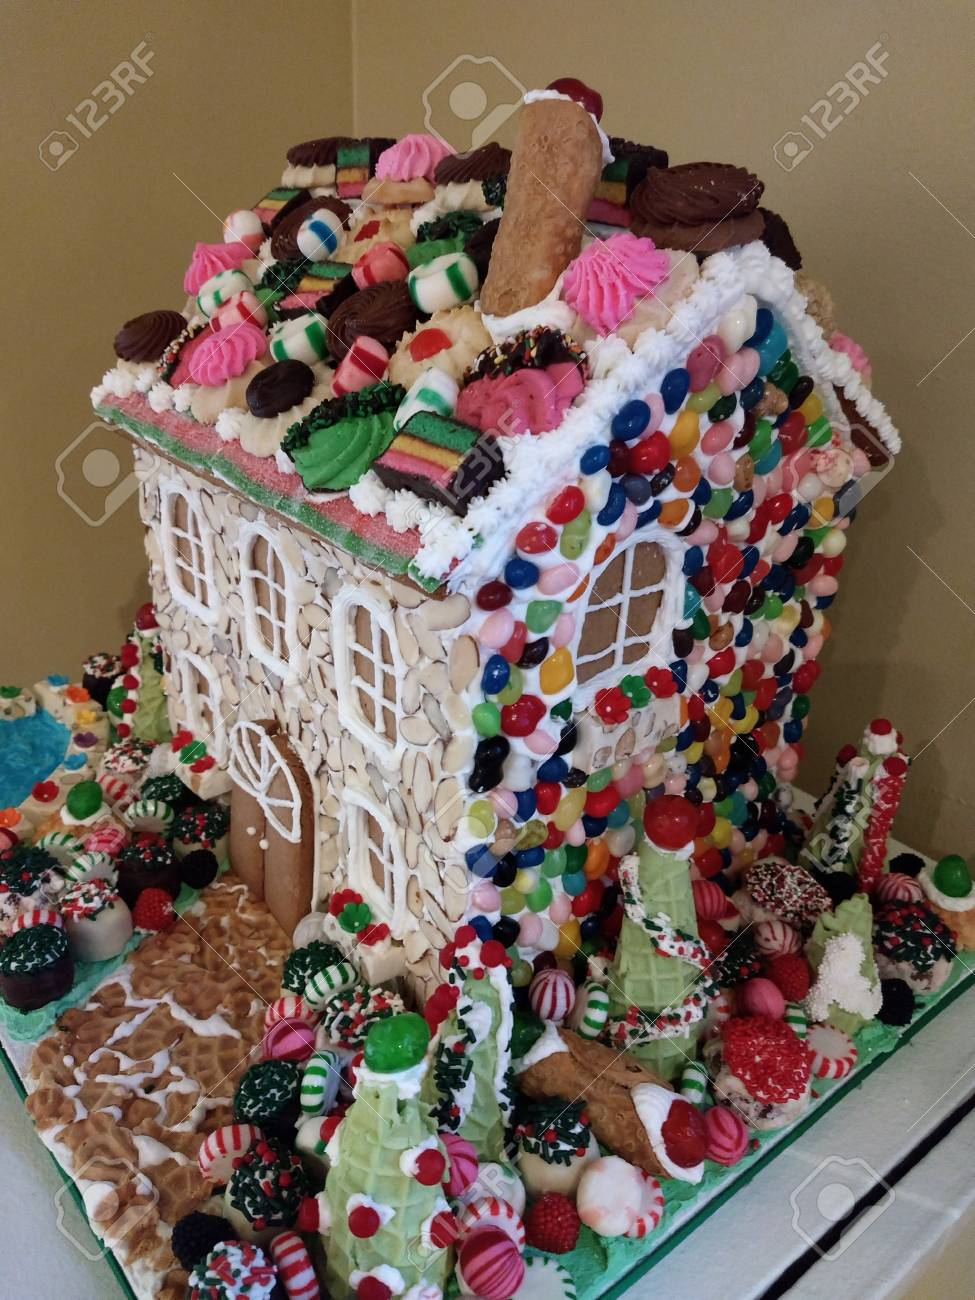 Editorial - November 14, 2017 - Rochester, NY - George Eastman Museum - gingerbread house exhibit Stock Photo - 90125392